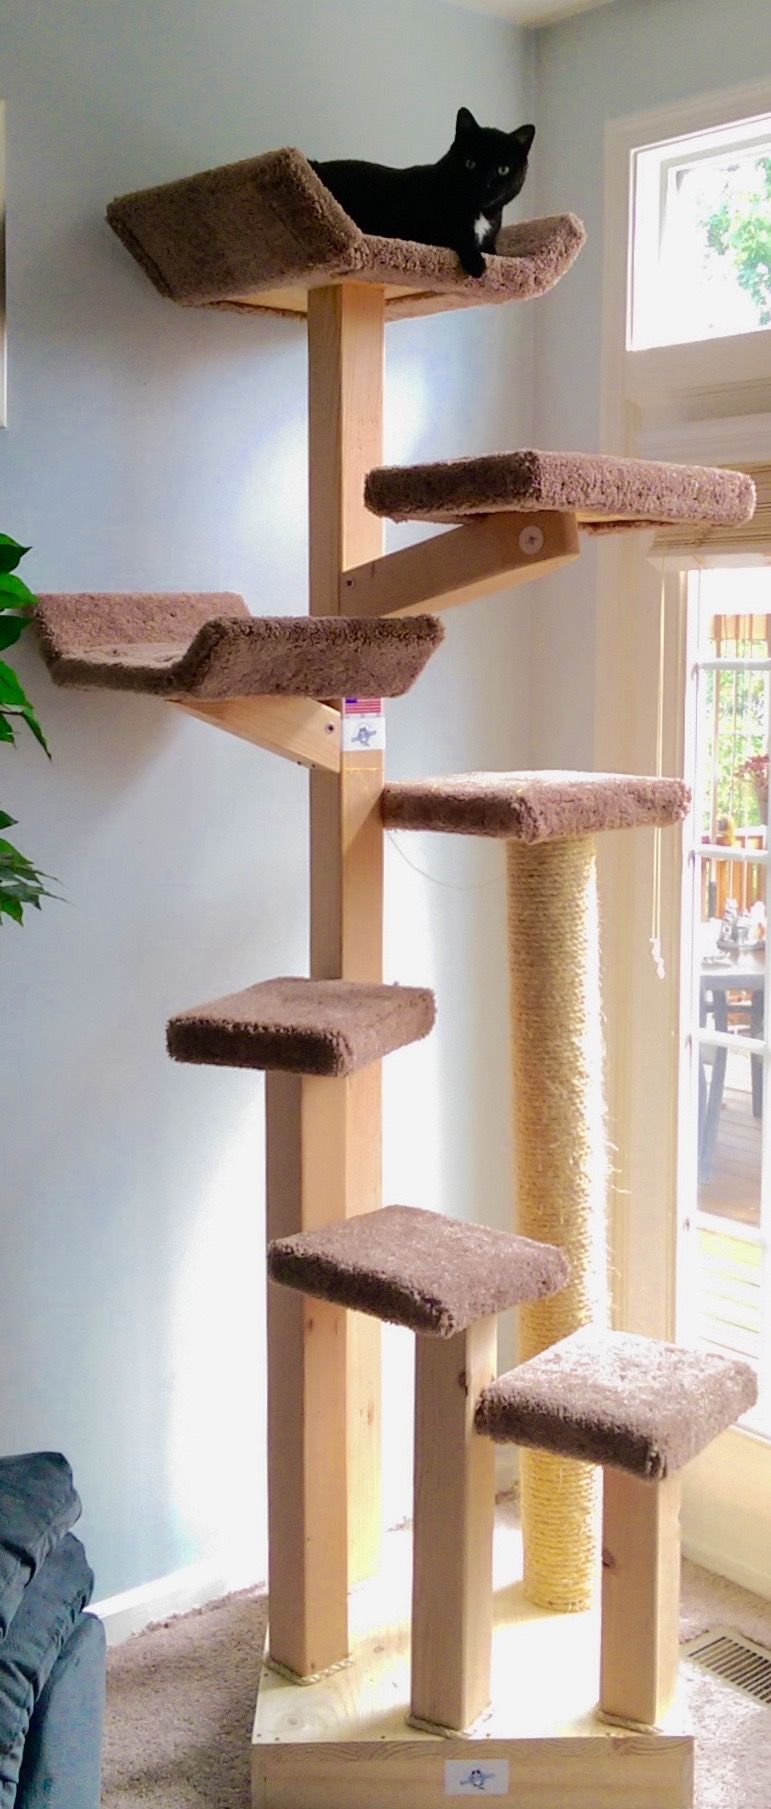 New Kool Kitty Toys 7 1 2 Foot Tree Please Call Us At 315 209 5444 Or Email Us At Koolkittytoys Gmail Com If You Would Like A Cu Diy Cat Tree Cat Diy Cat Room